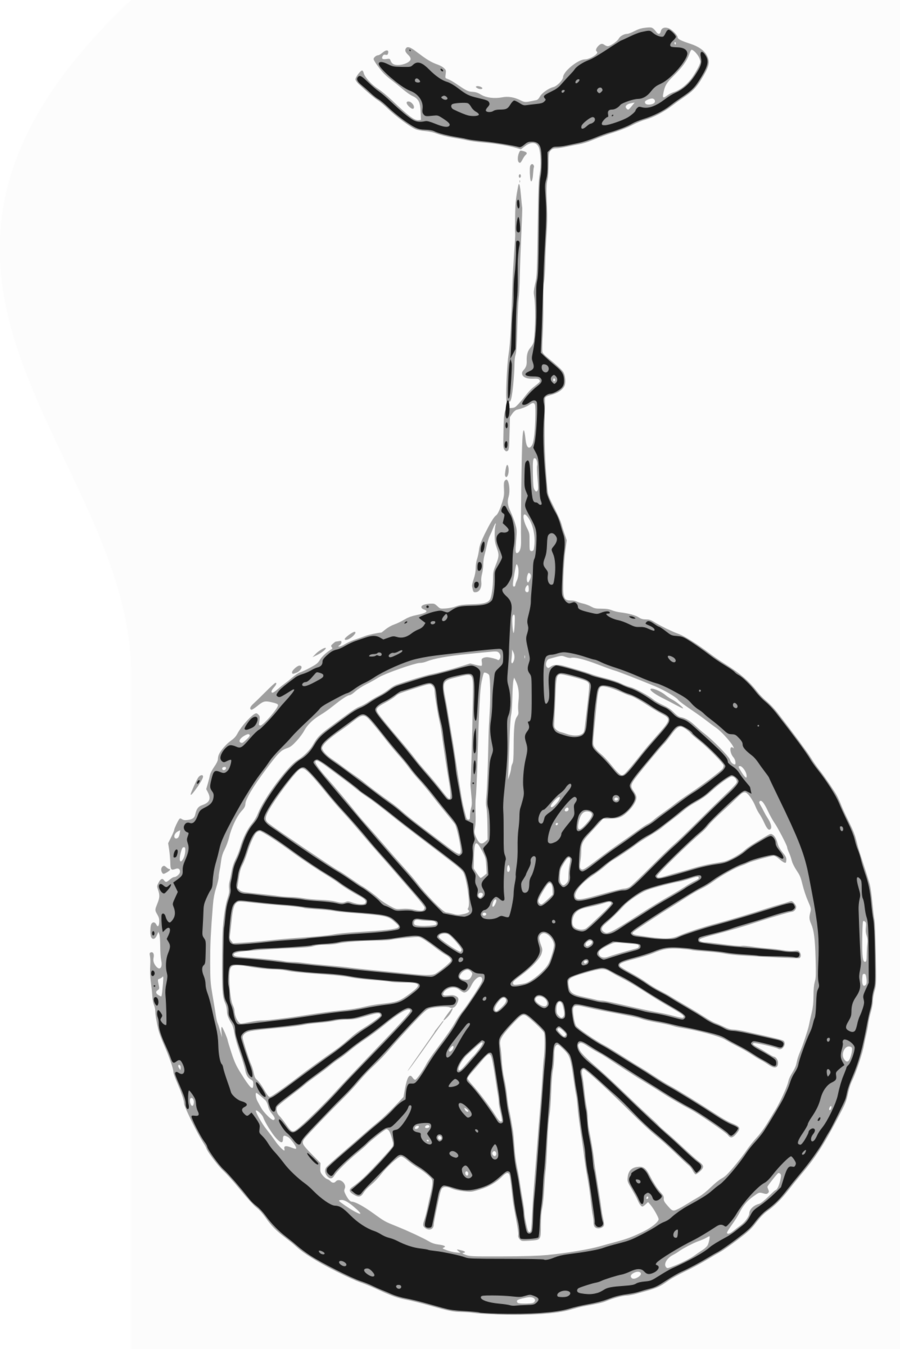 Unicycle clipart black and white vector library stock Black And White Frame clipart - Tshirt, Bicycle, Wheel ... vector library stock